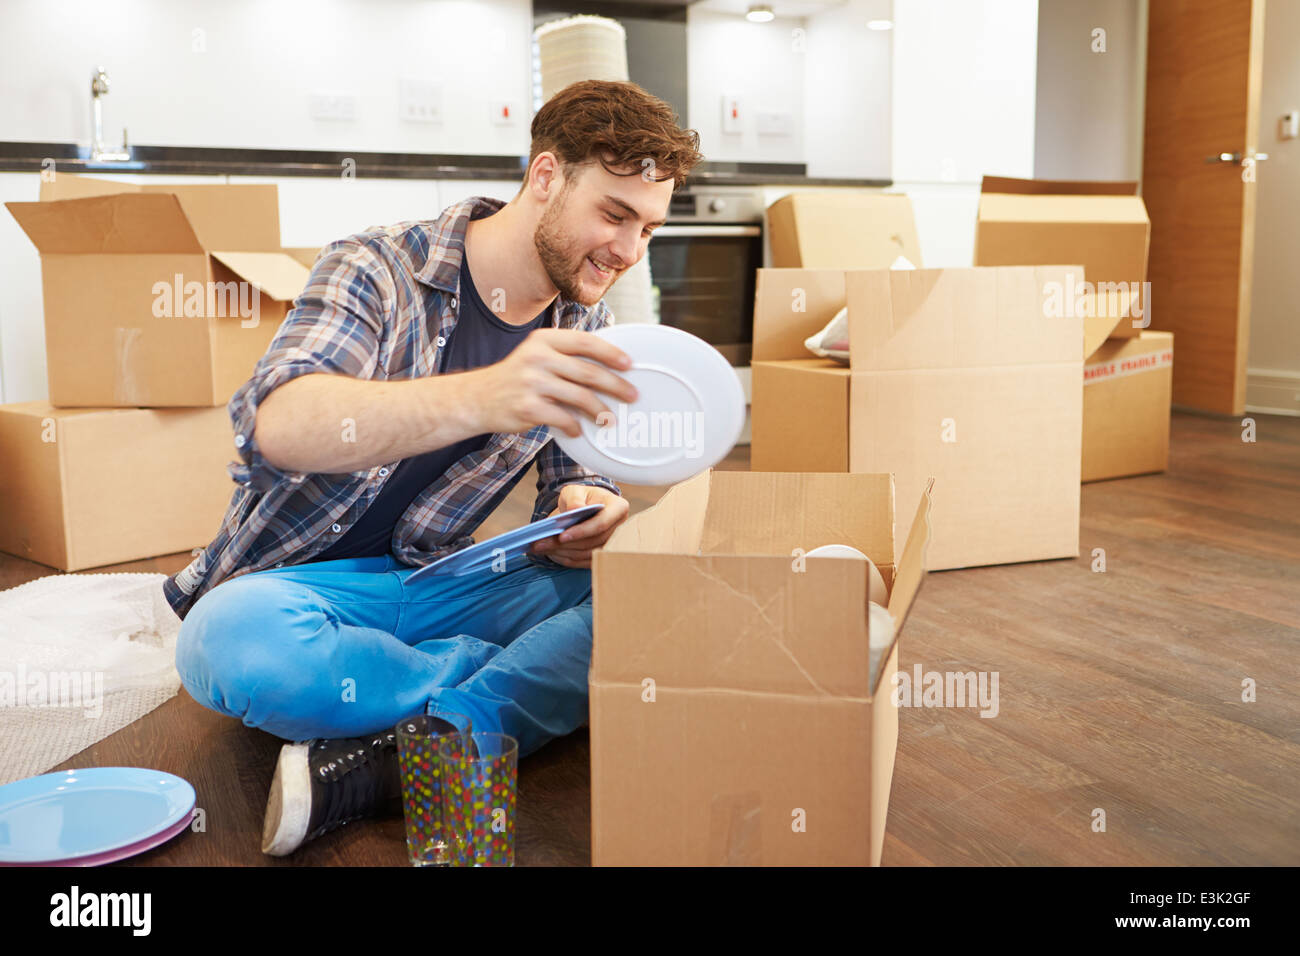 Man Moving Into New Home And Unpacking Boxes - Stock Image